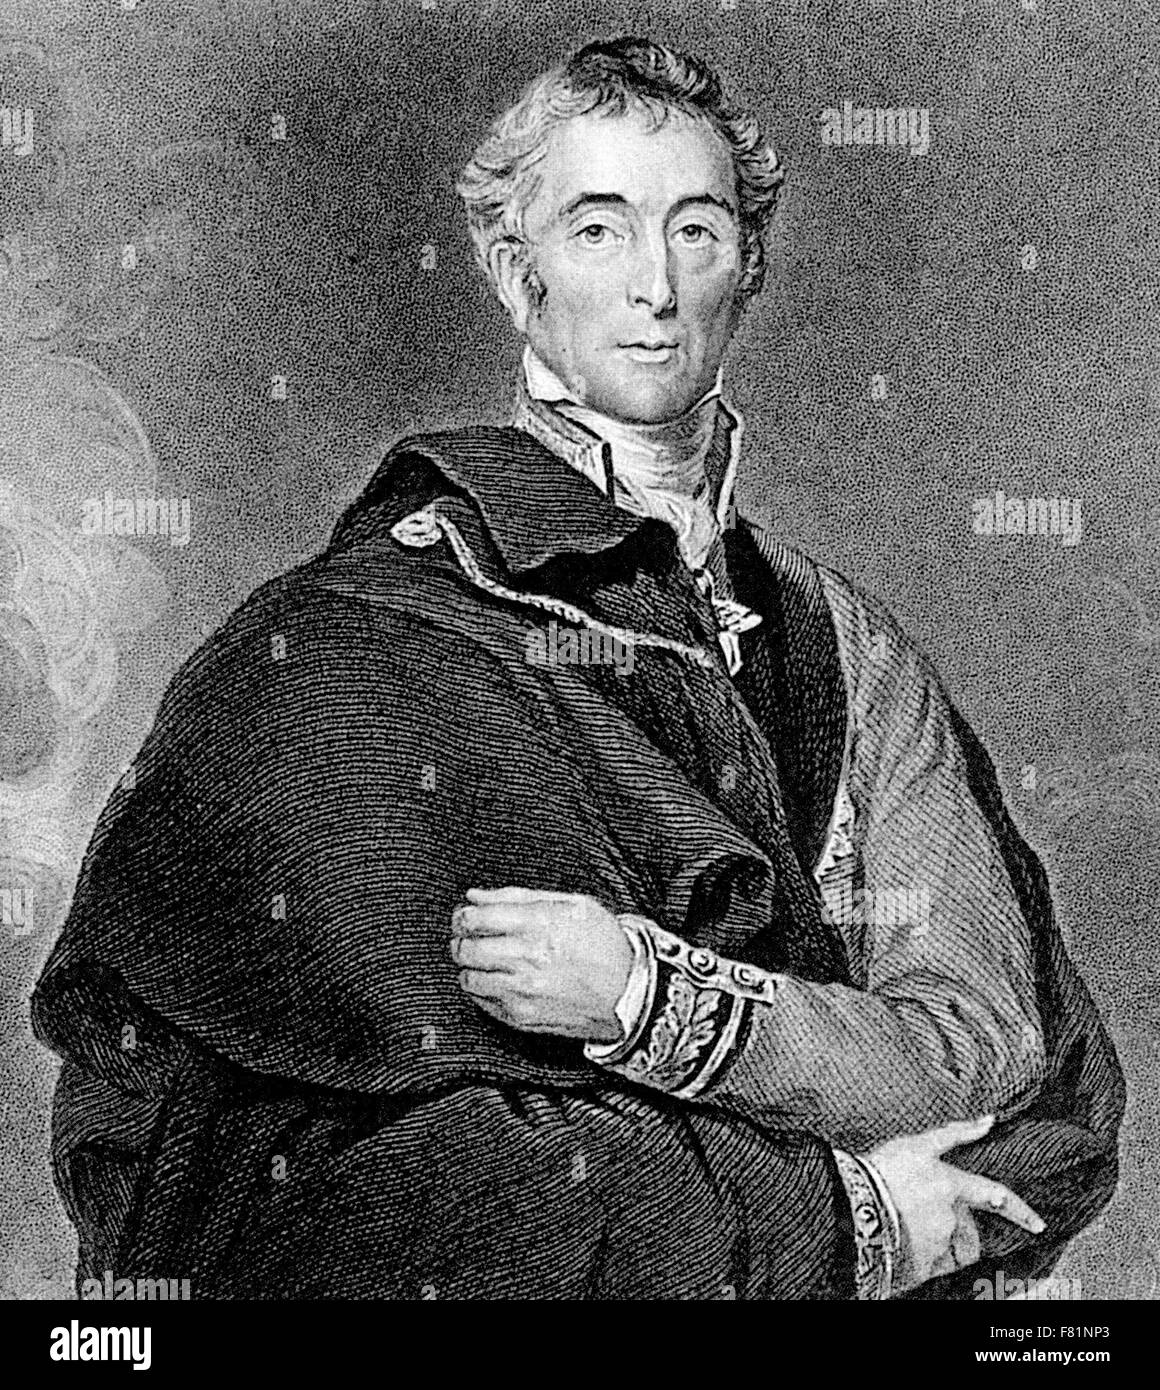 ARTHUR WELLESLEY, 1st Duke of Wellington (1769-1852) engraving about 1825 - Stock Image